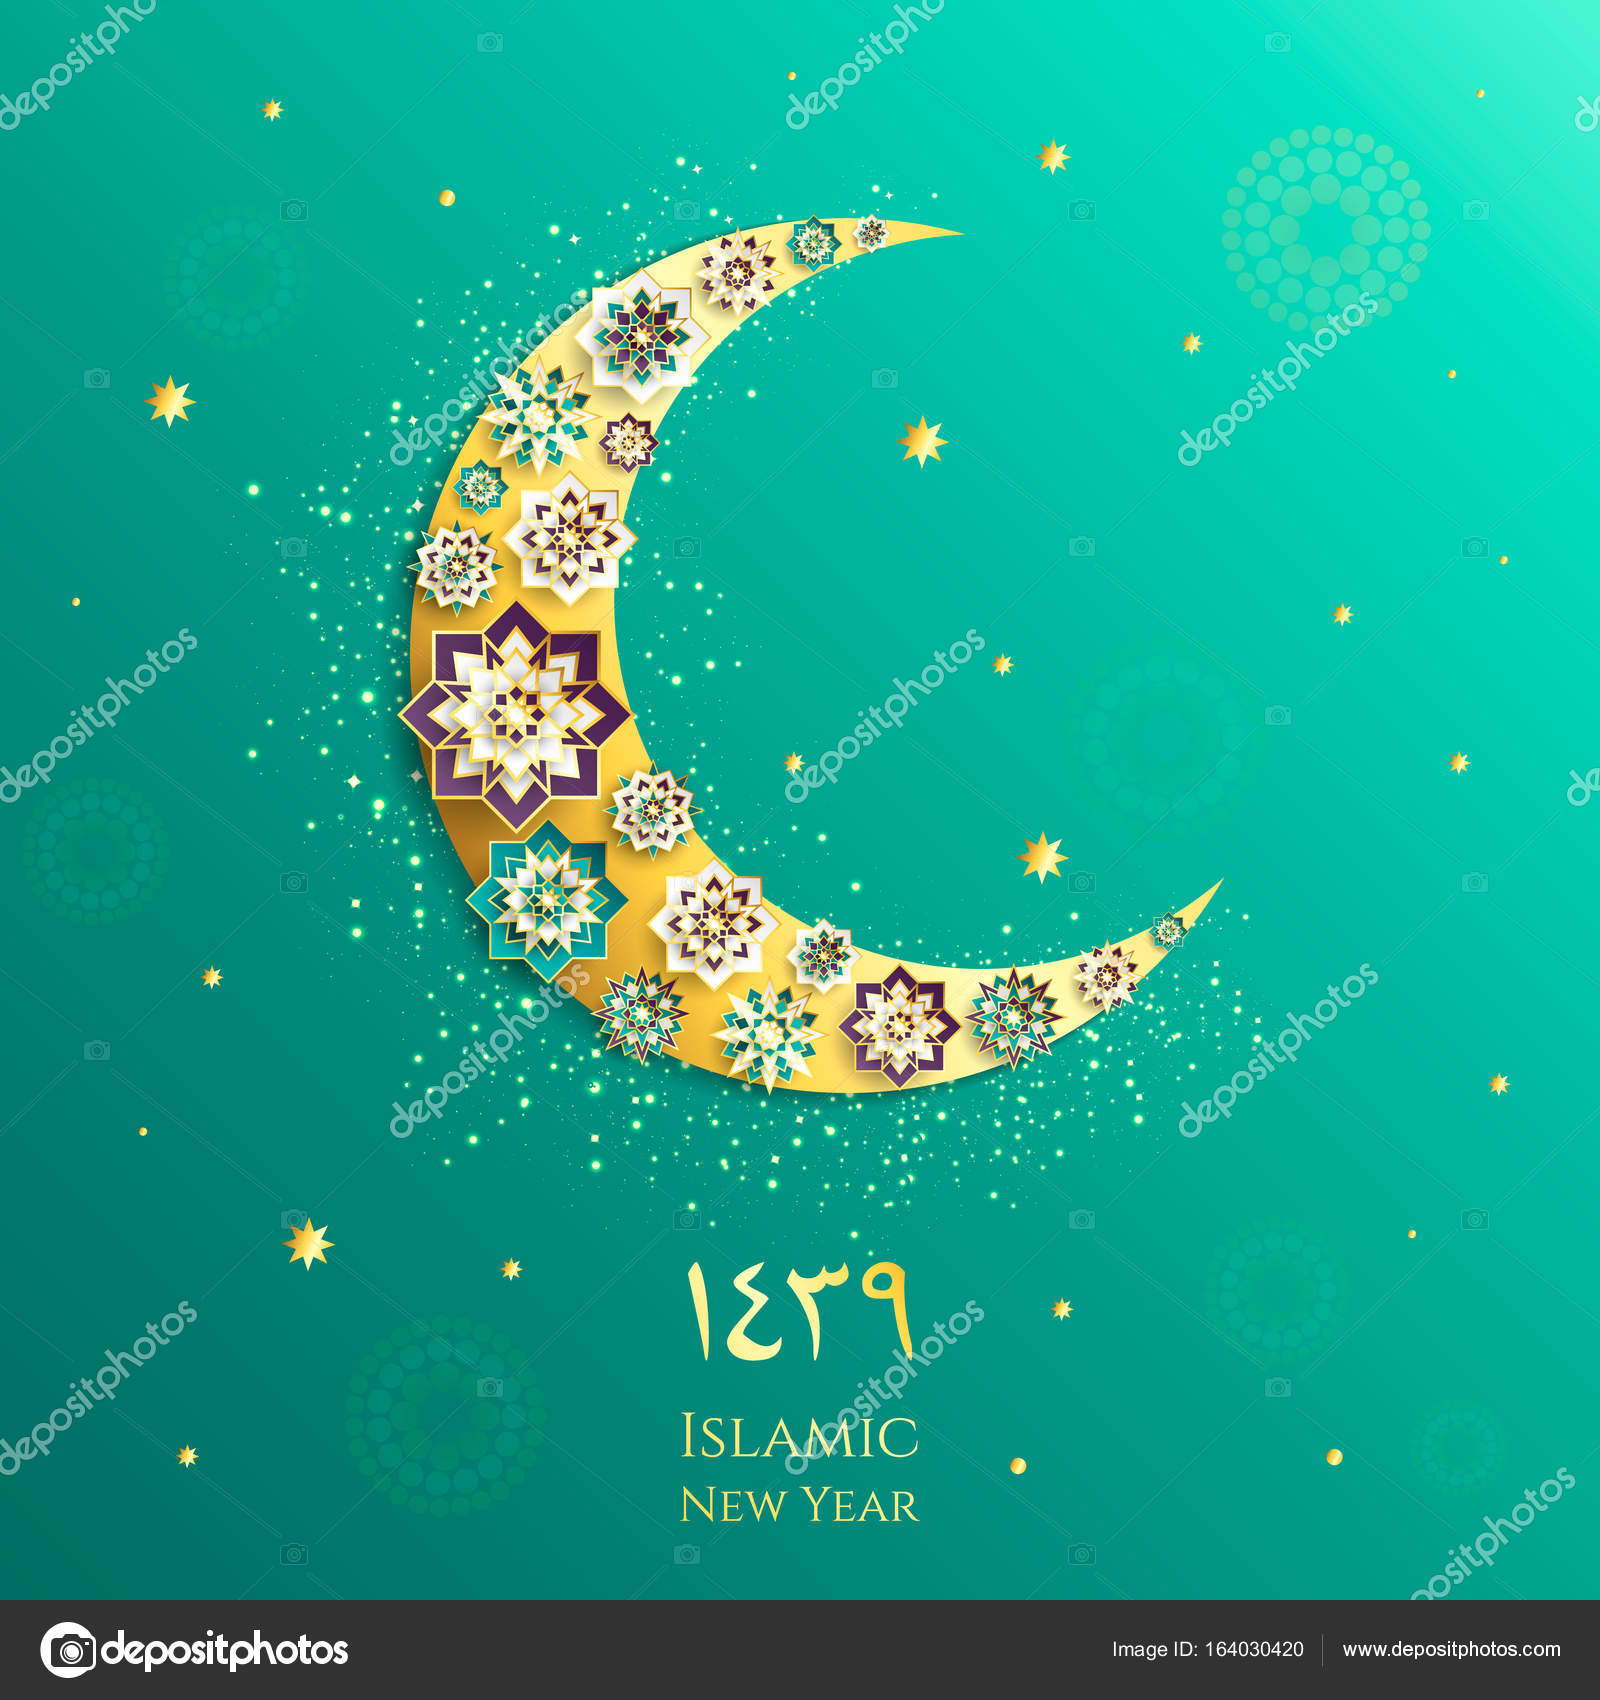 1439 hijri islamic new year. Happy Muharram. Muslim community festival Eid  al ul Adha